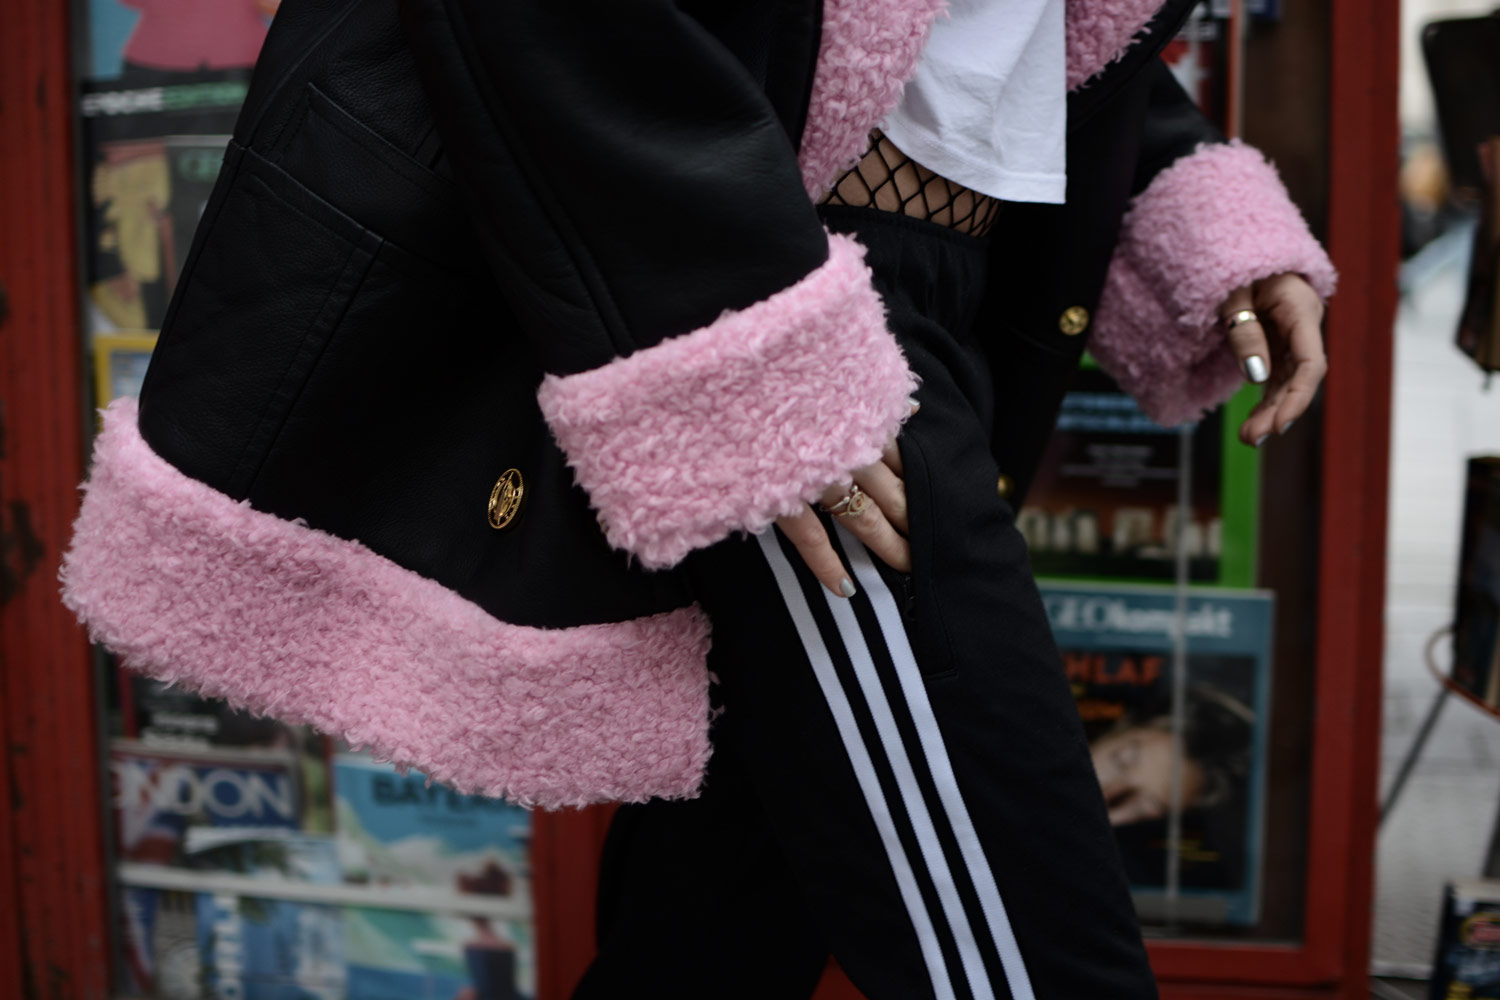 kenzo x h&m release, pink fur leather jacket, adidas track pants, cadenzza jewelry